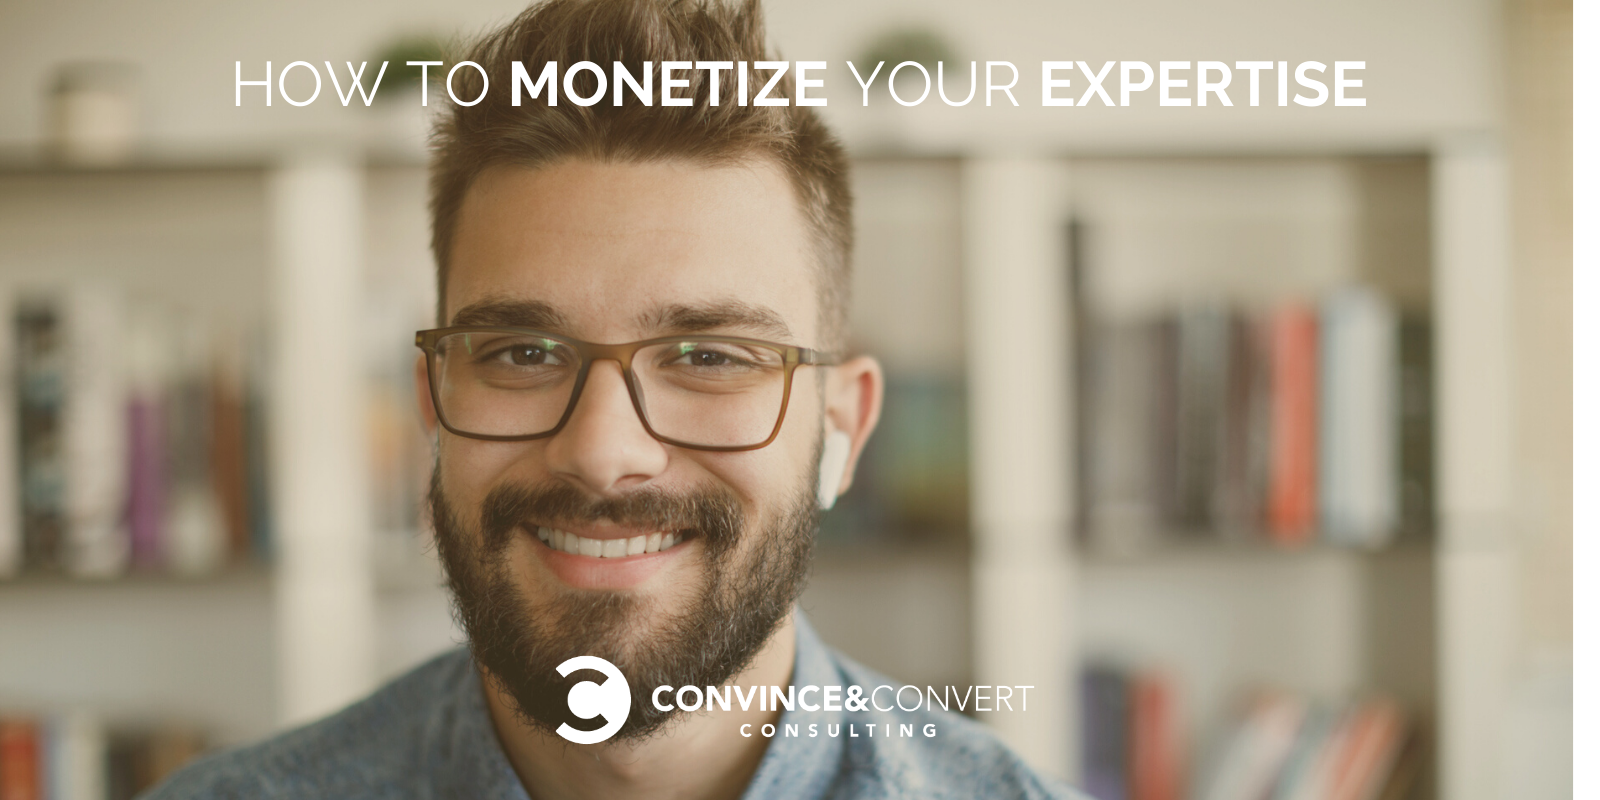 How to Monetize Your Expertise